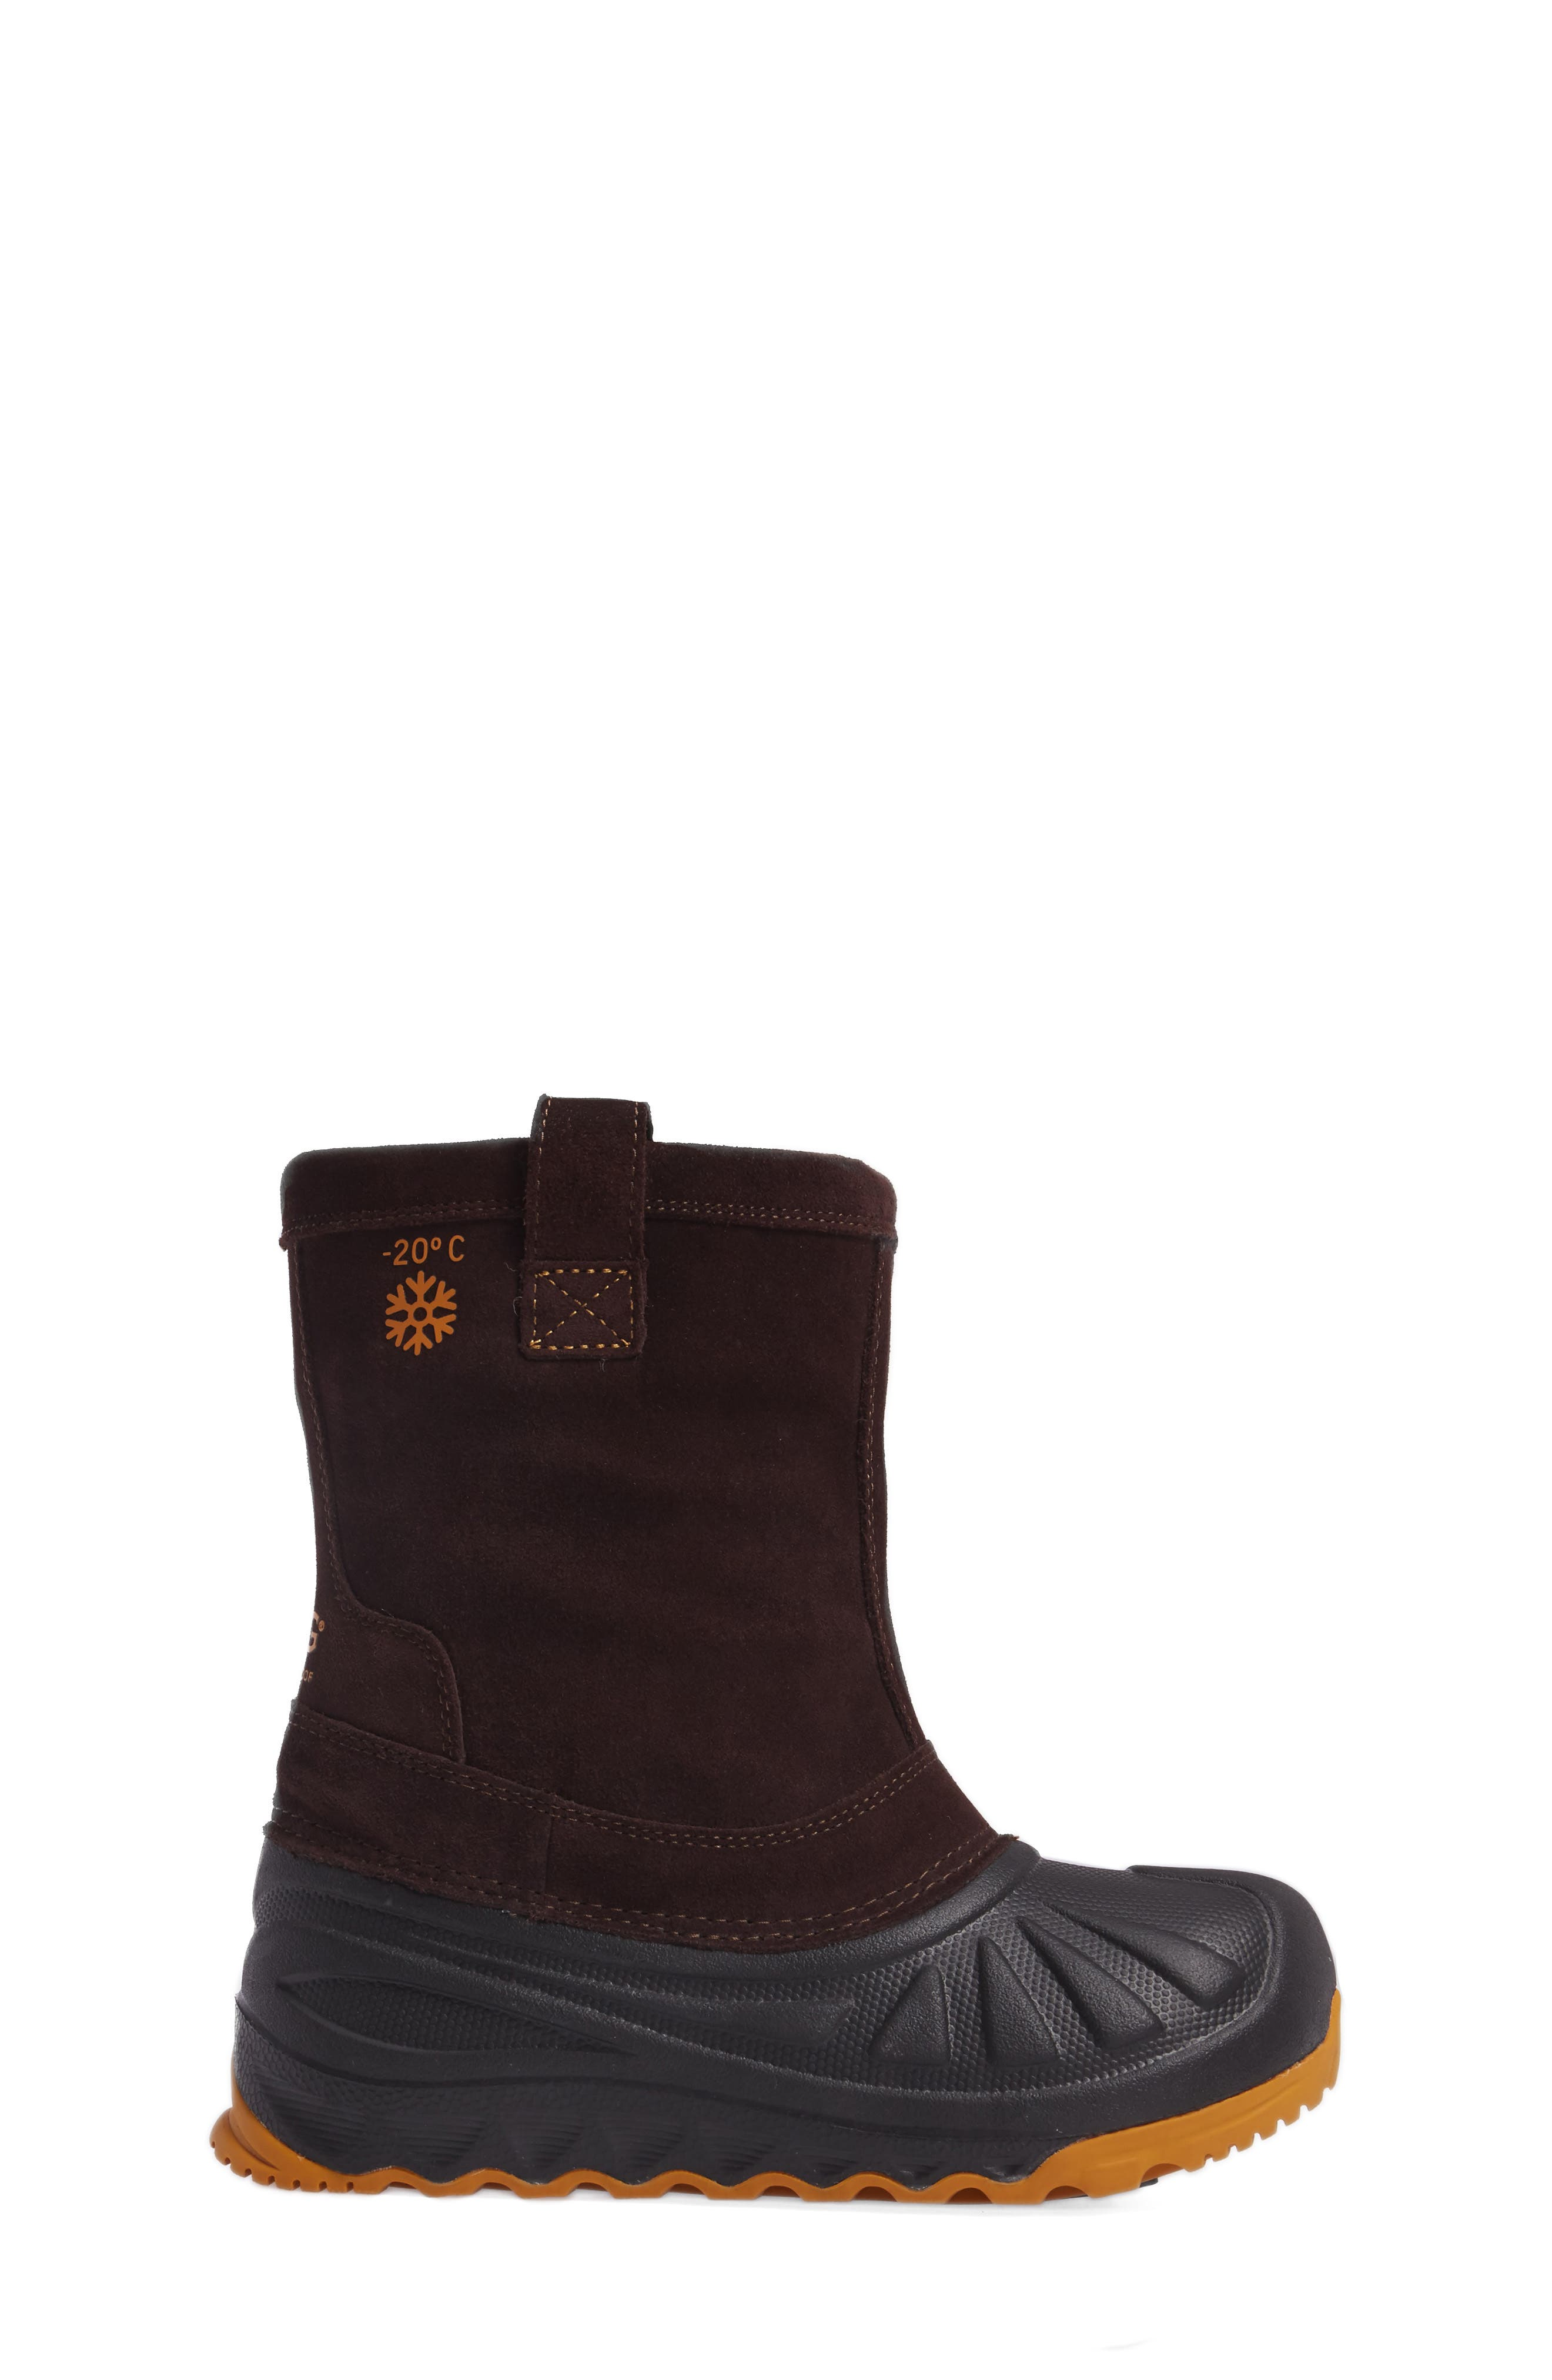 Alternate Image 3  - UGG® Evertt Waterproof Thinsulate™ Insulated Snow Boot (Toddler, Little Kid & Big Kid)